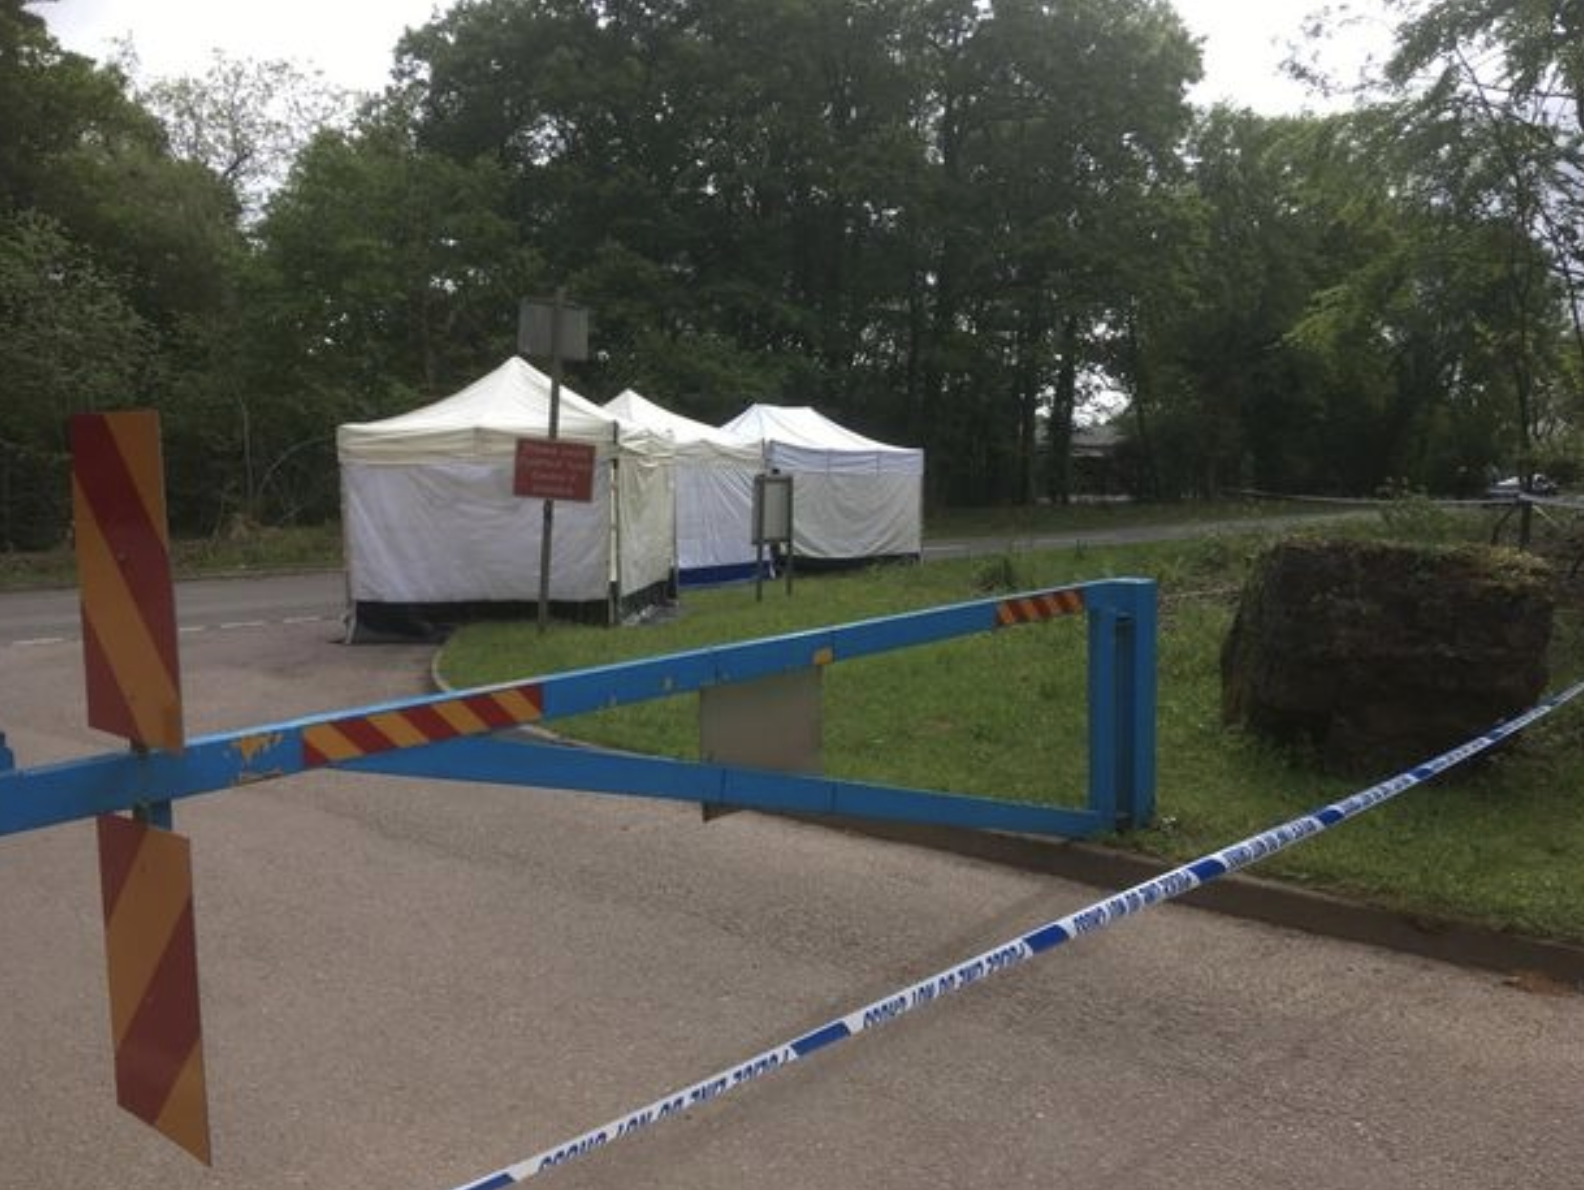 Tents erected at the scene where body parts were found in two suitcases. Source: BPM Media